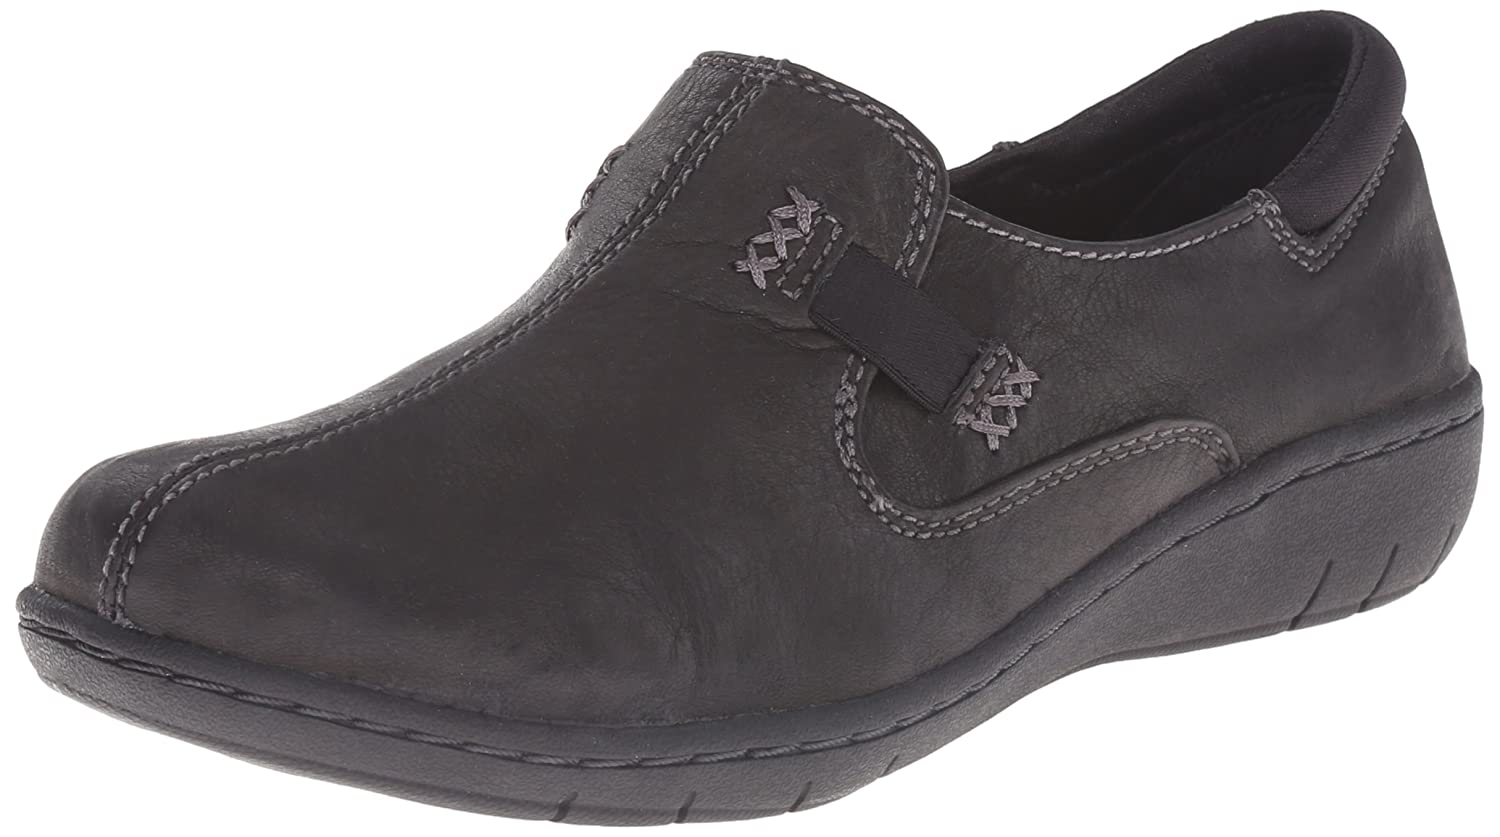 Skechers Women's Washington Closure Slip-On Loafer B00XNS76M6 6 B(M) US|Black Closure